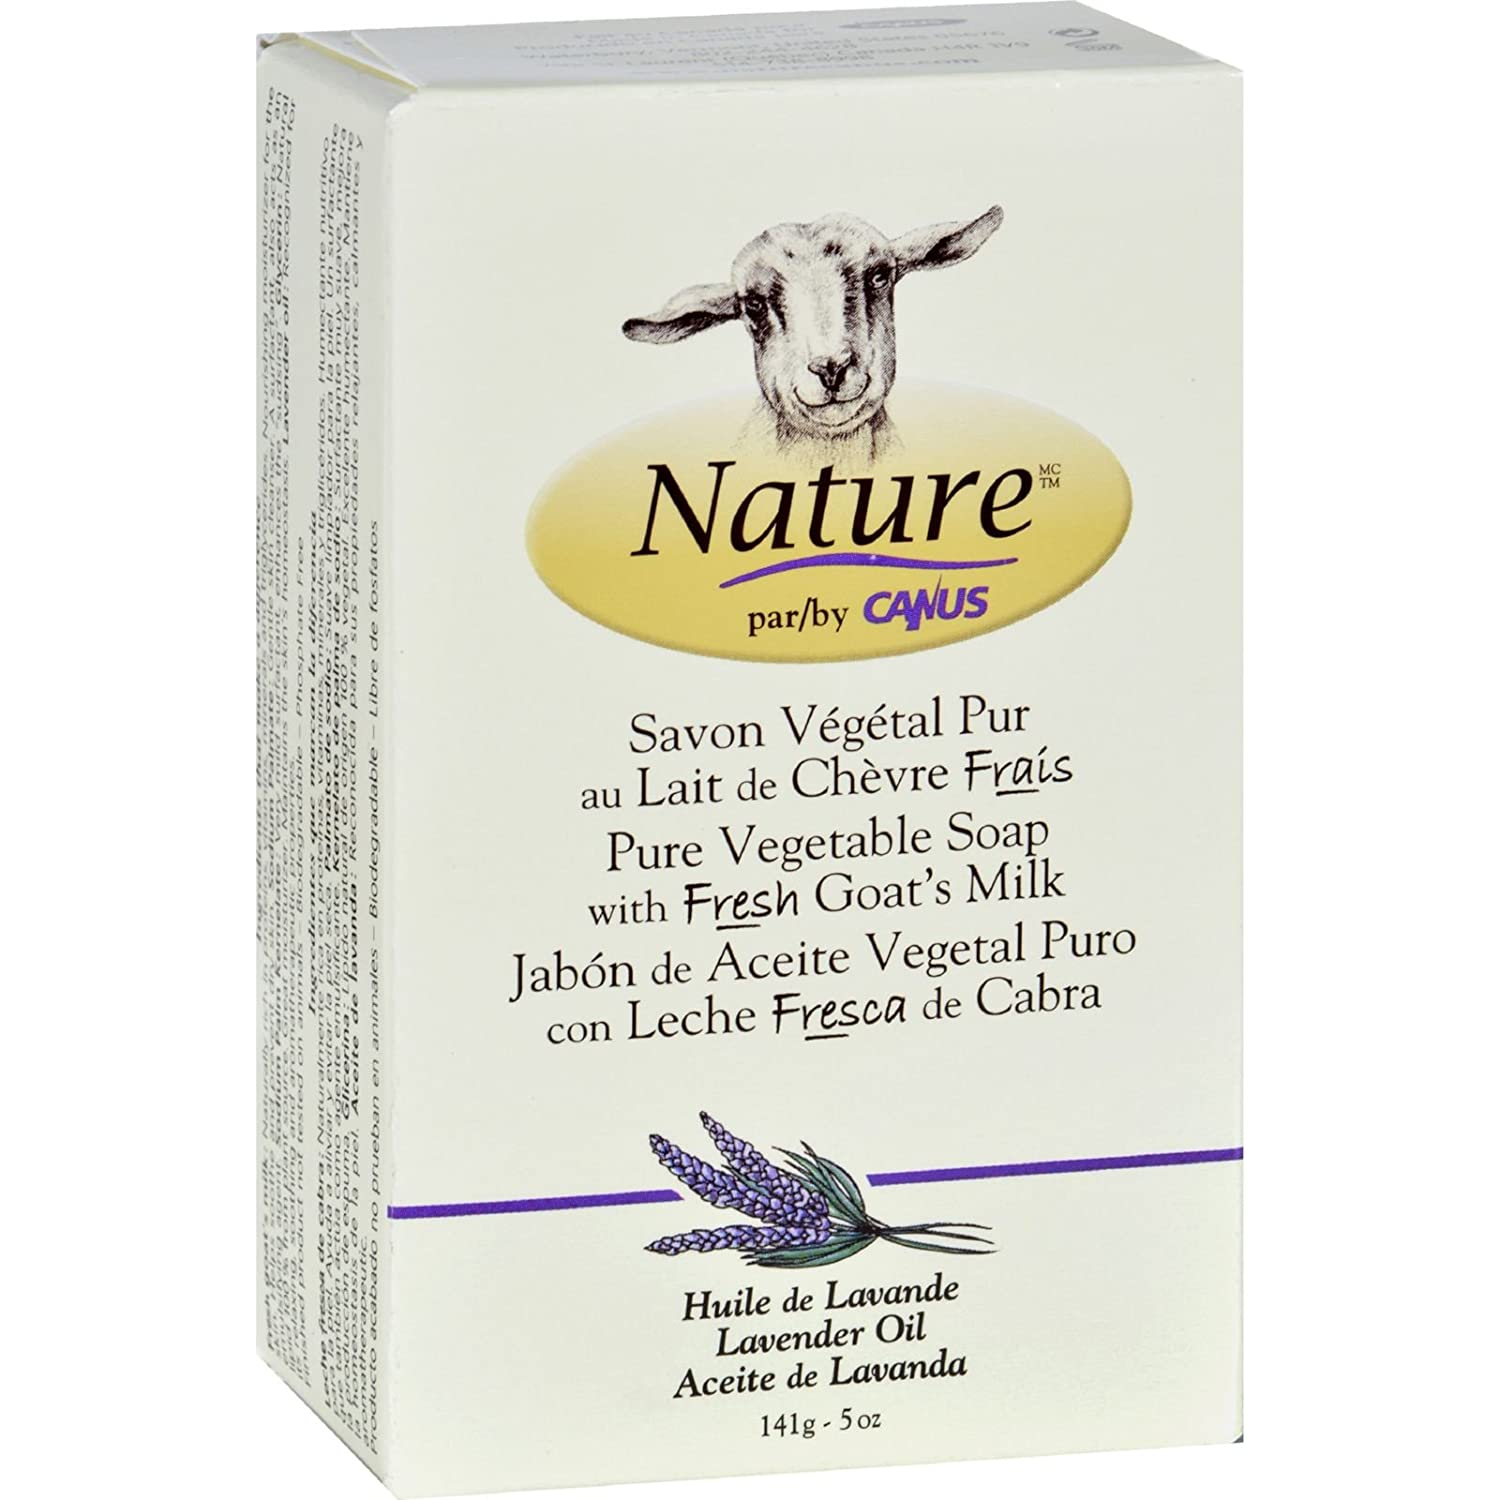 Nature By Canus Bar Soap - Goats Milk - Lavender Oil - 5 oz - (Pack of 3)